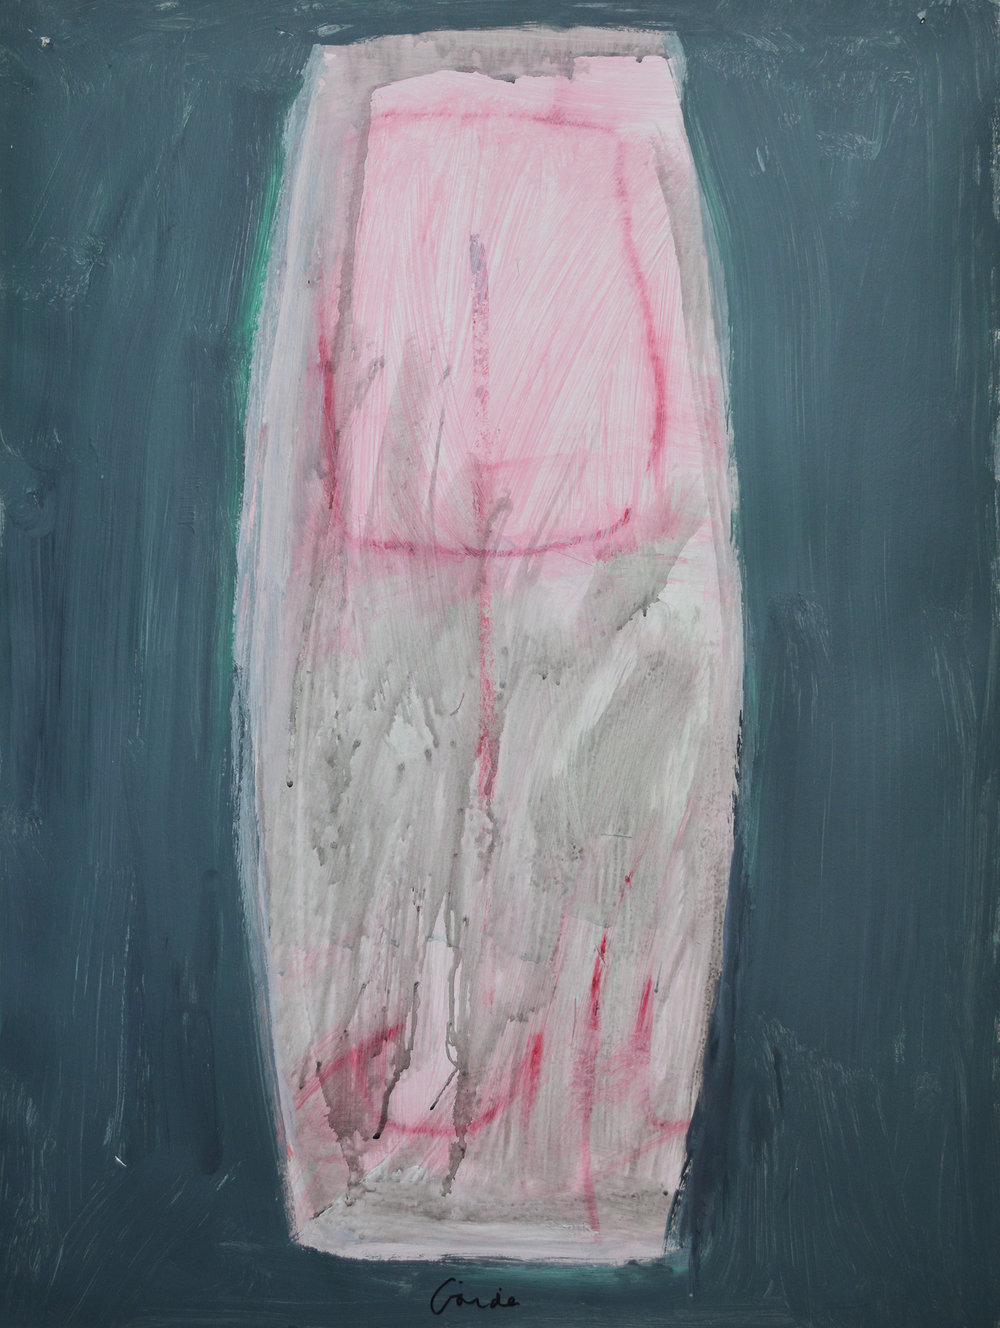 Pink Vessel, 2004. Acrylic on paper, 30 x 22 in. (76 x 56 cm.)